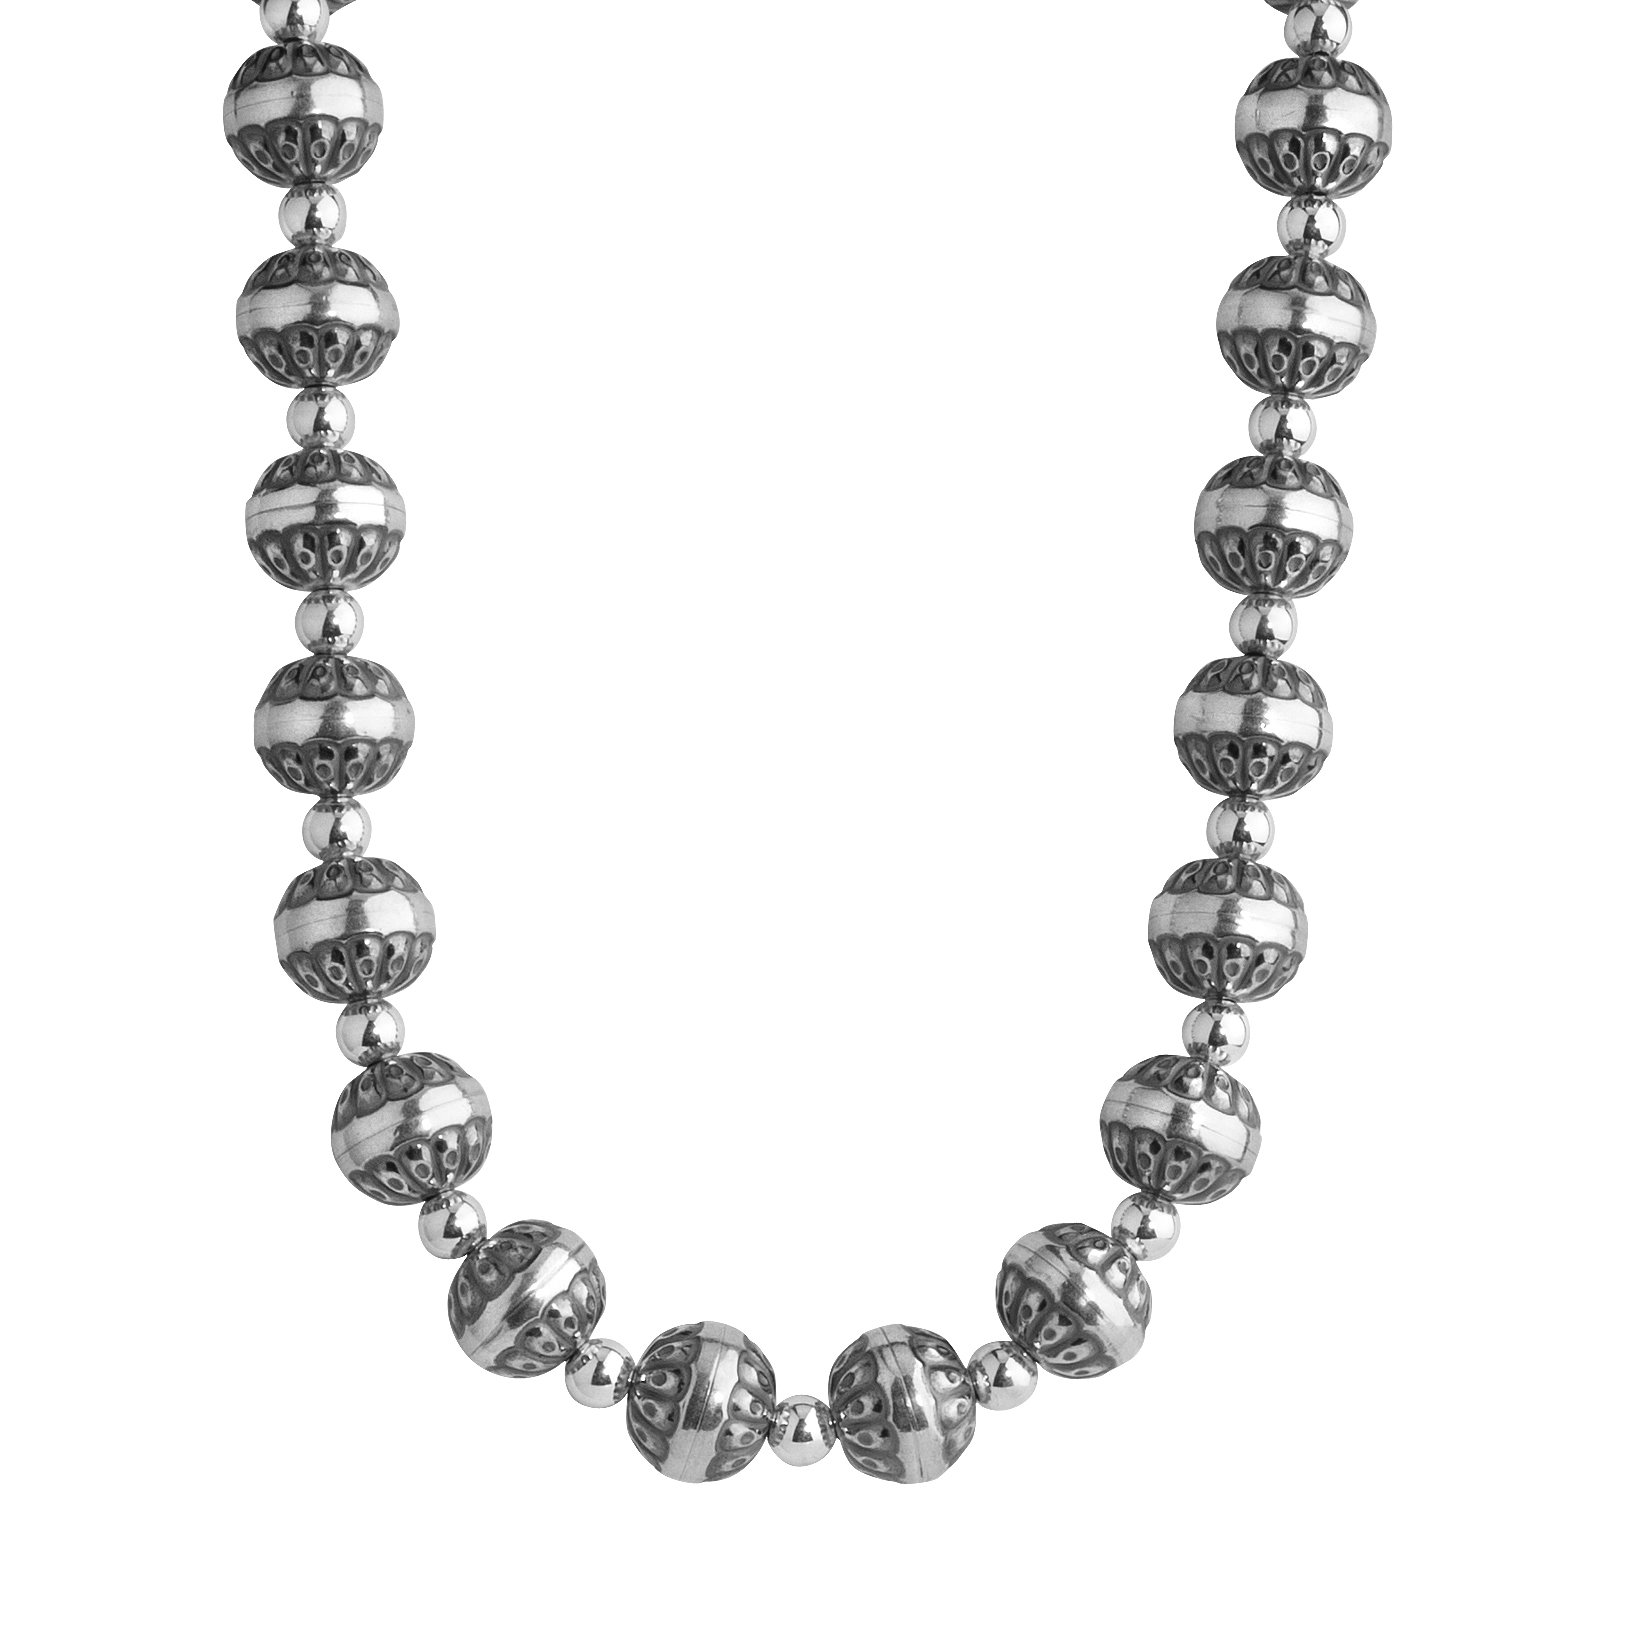 American West Sterling Silver 17'' Beaded Necklace with Native Pearl & Polished Beads